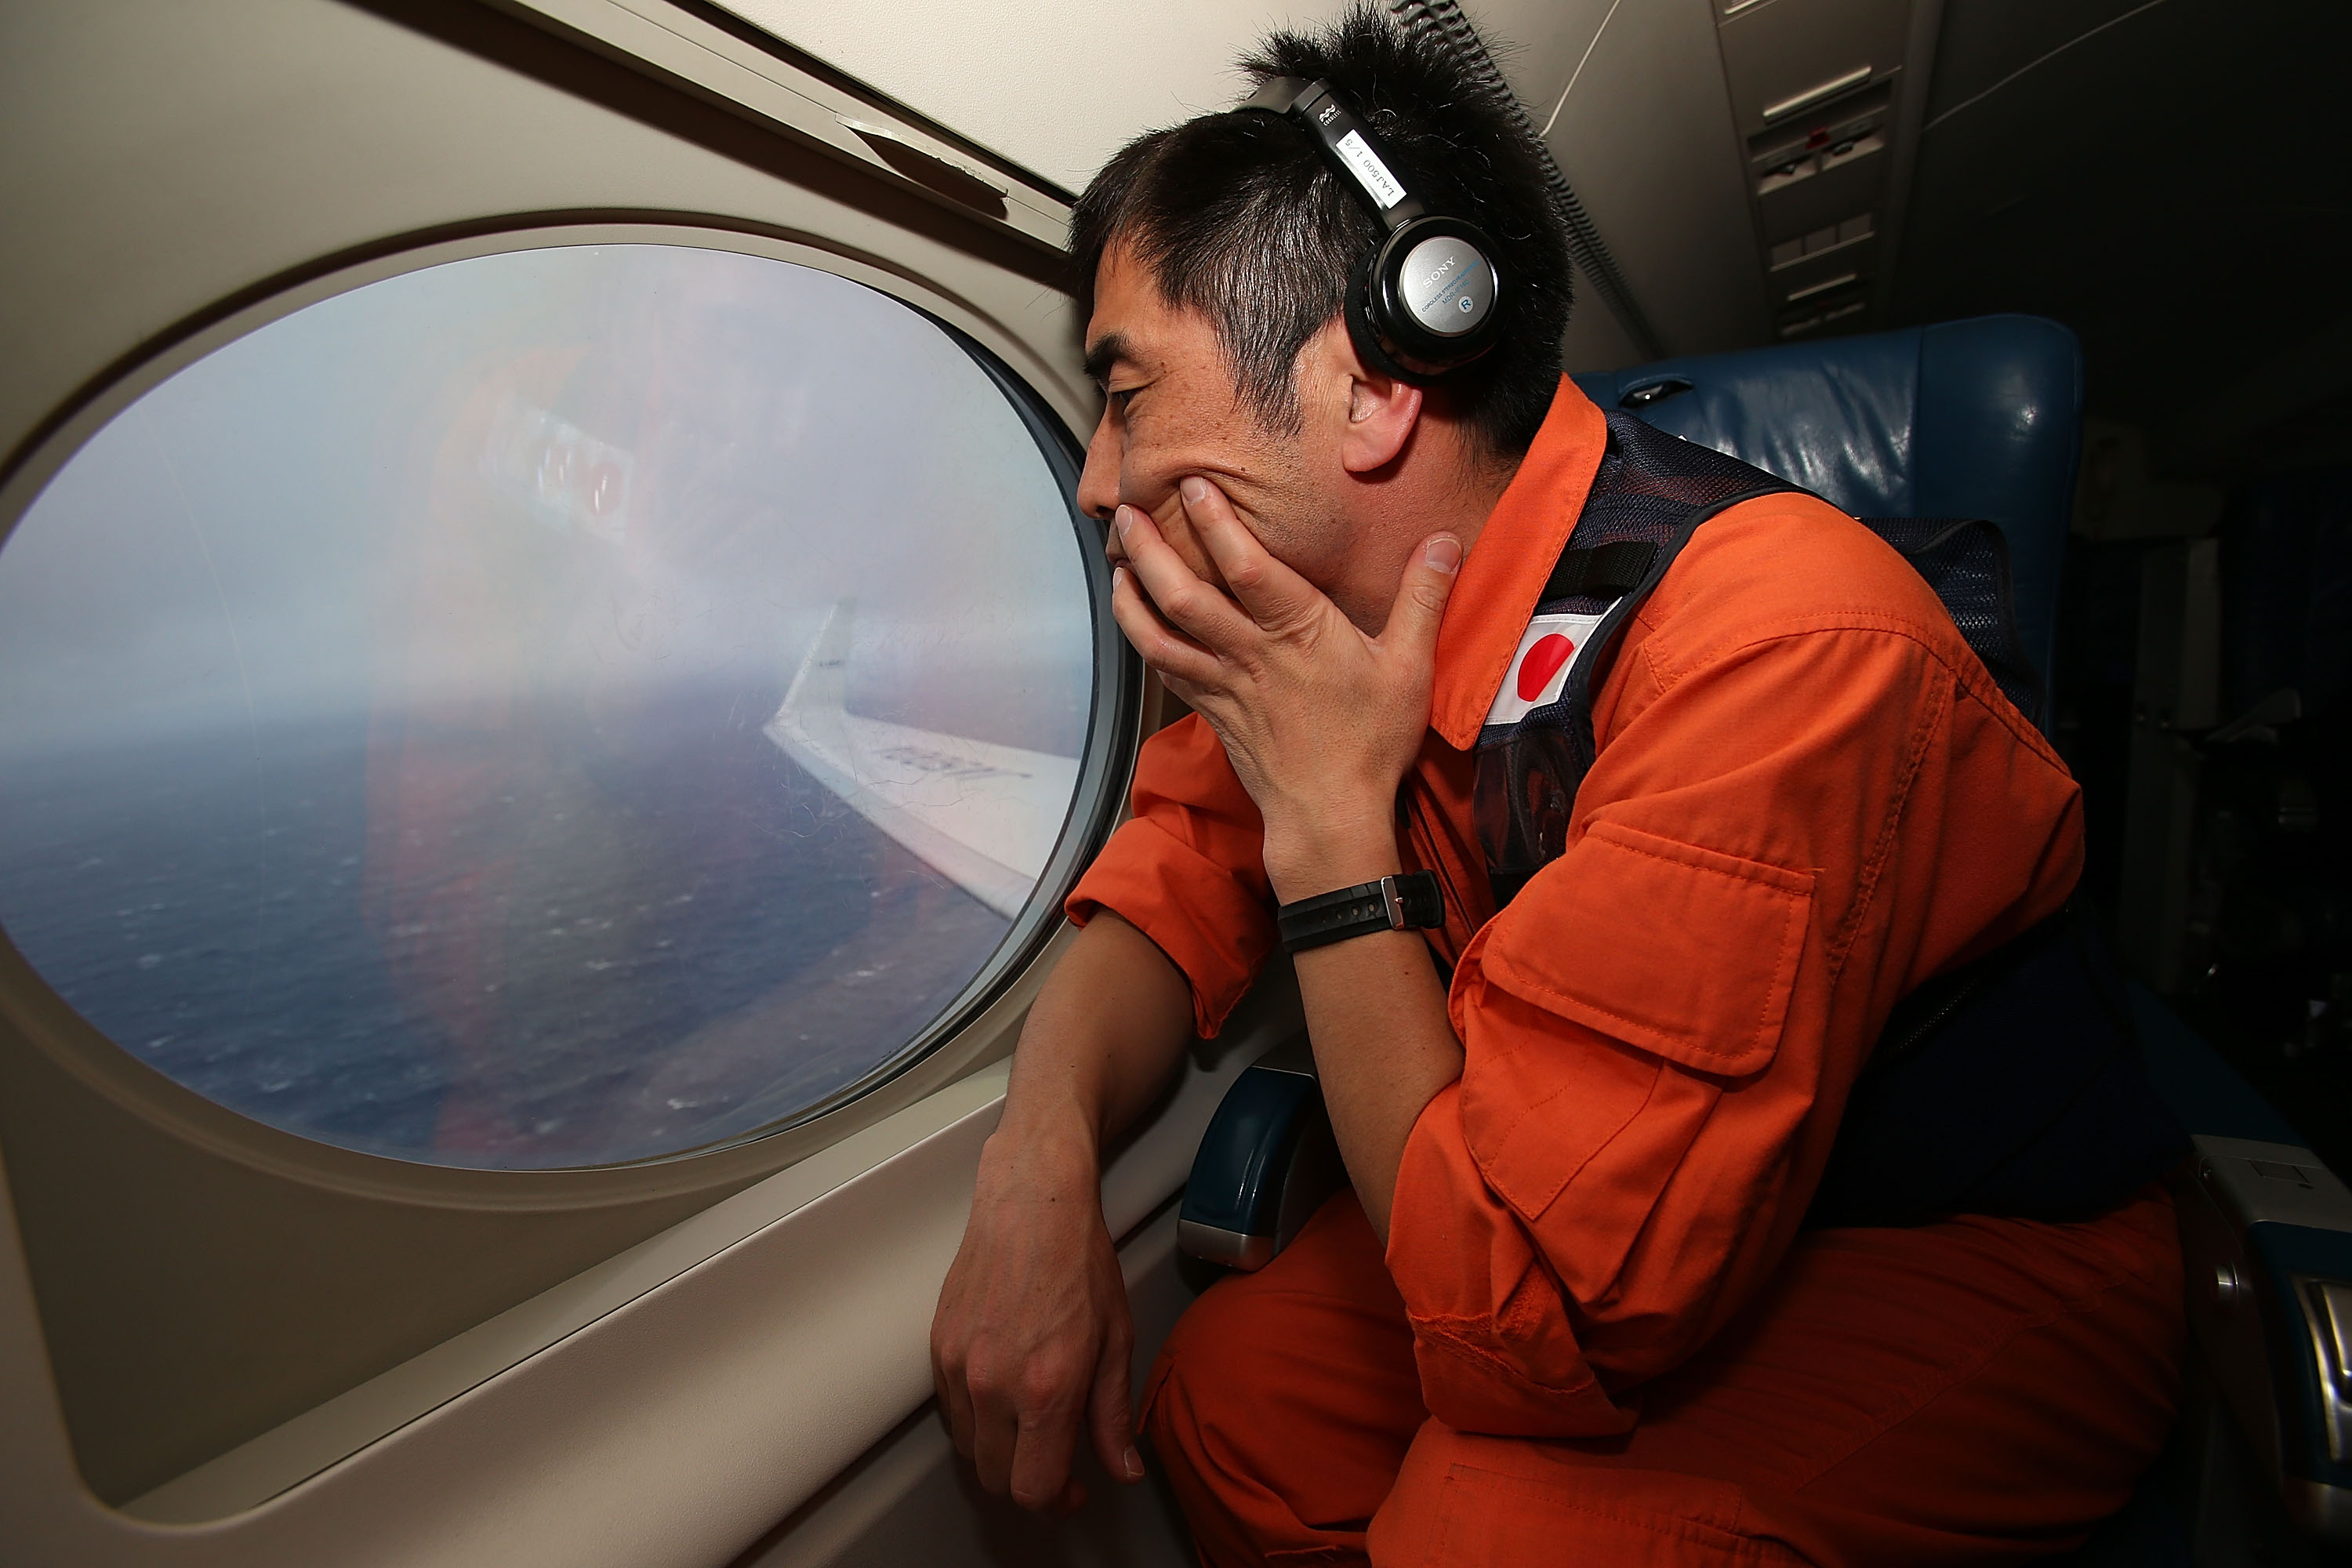 The Japan Coast Guard keeps watch for debris in the search zone for debris from Malaysia Airlines flight MH370 on April 1, 2014.